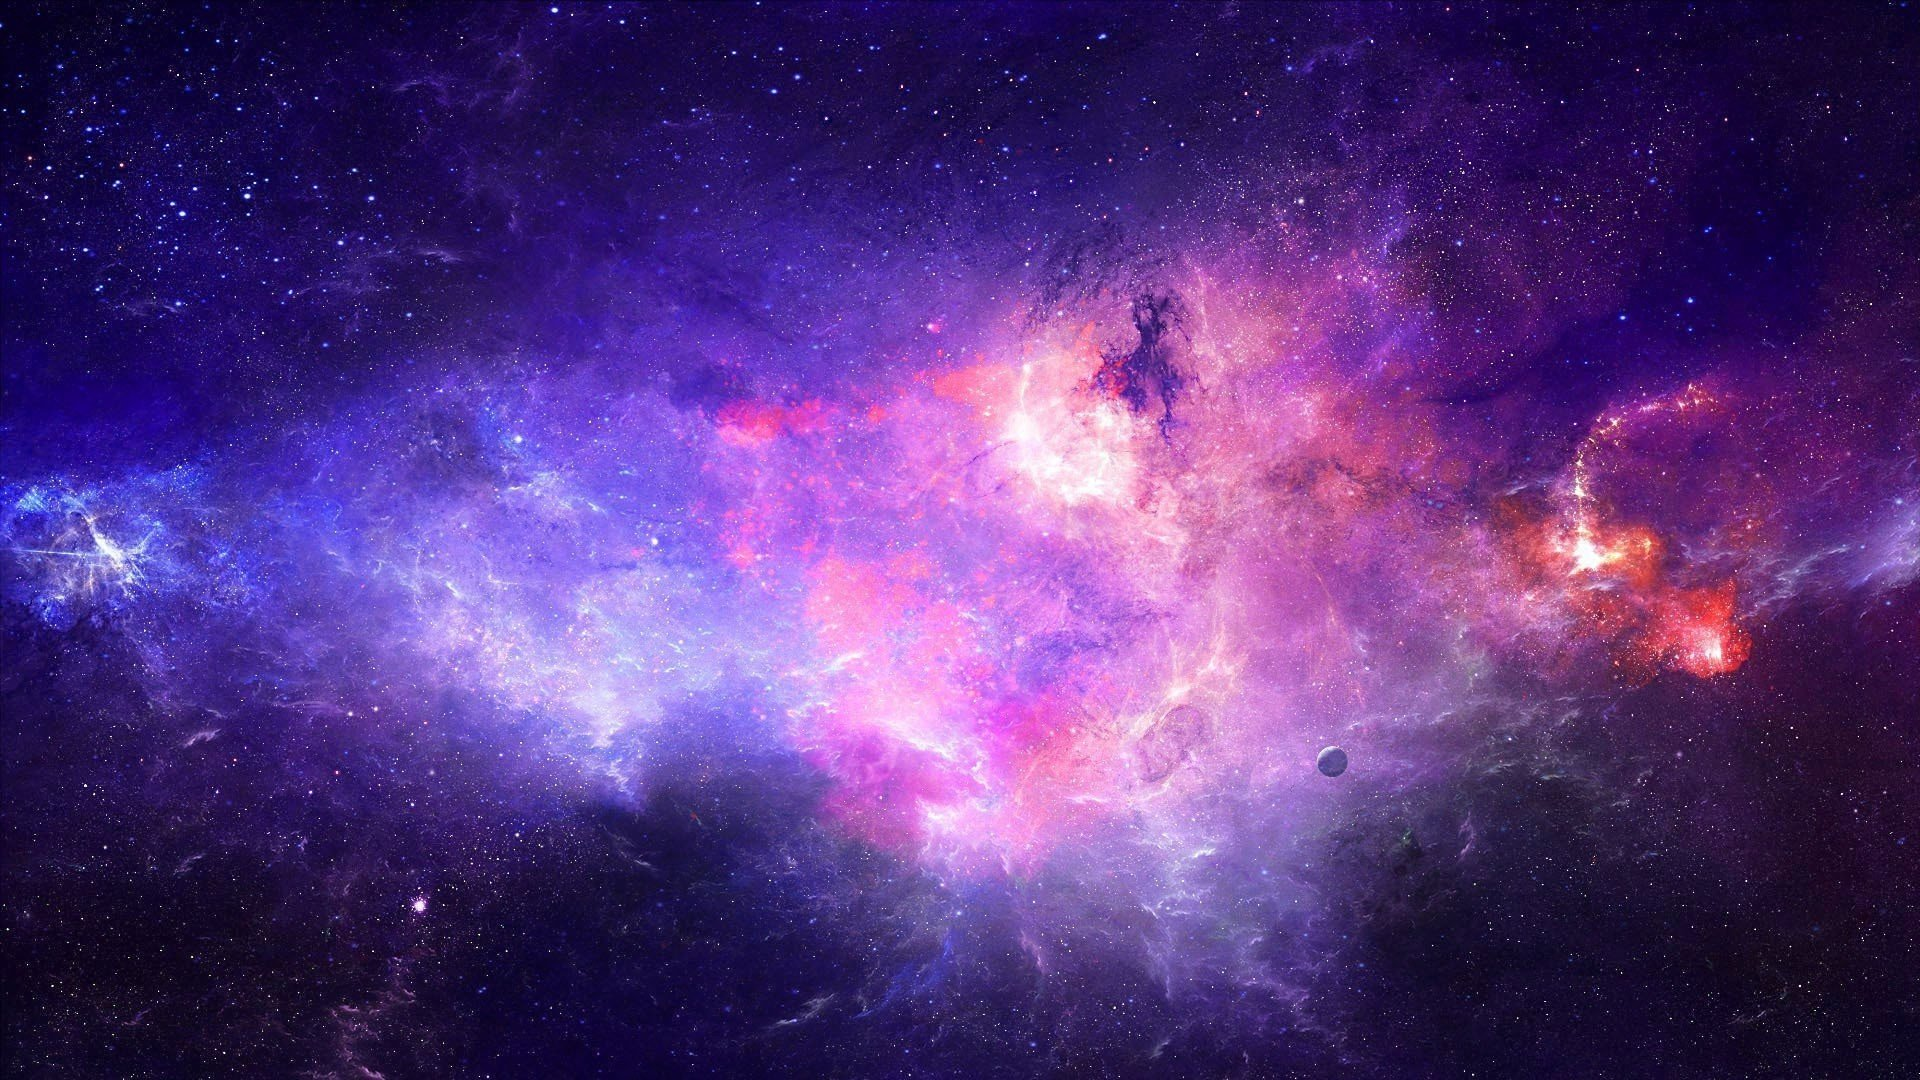 28 Space Wallpaper Hd Purple On Wallpapersafari